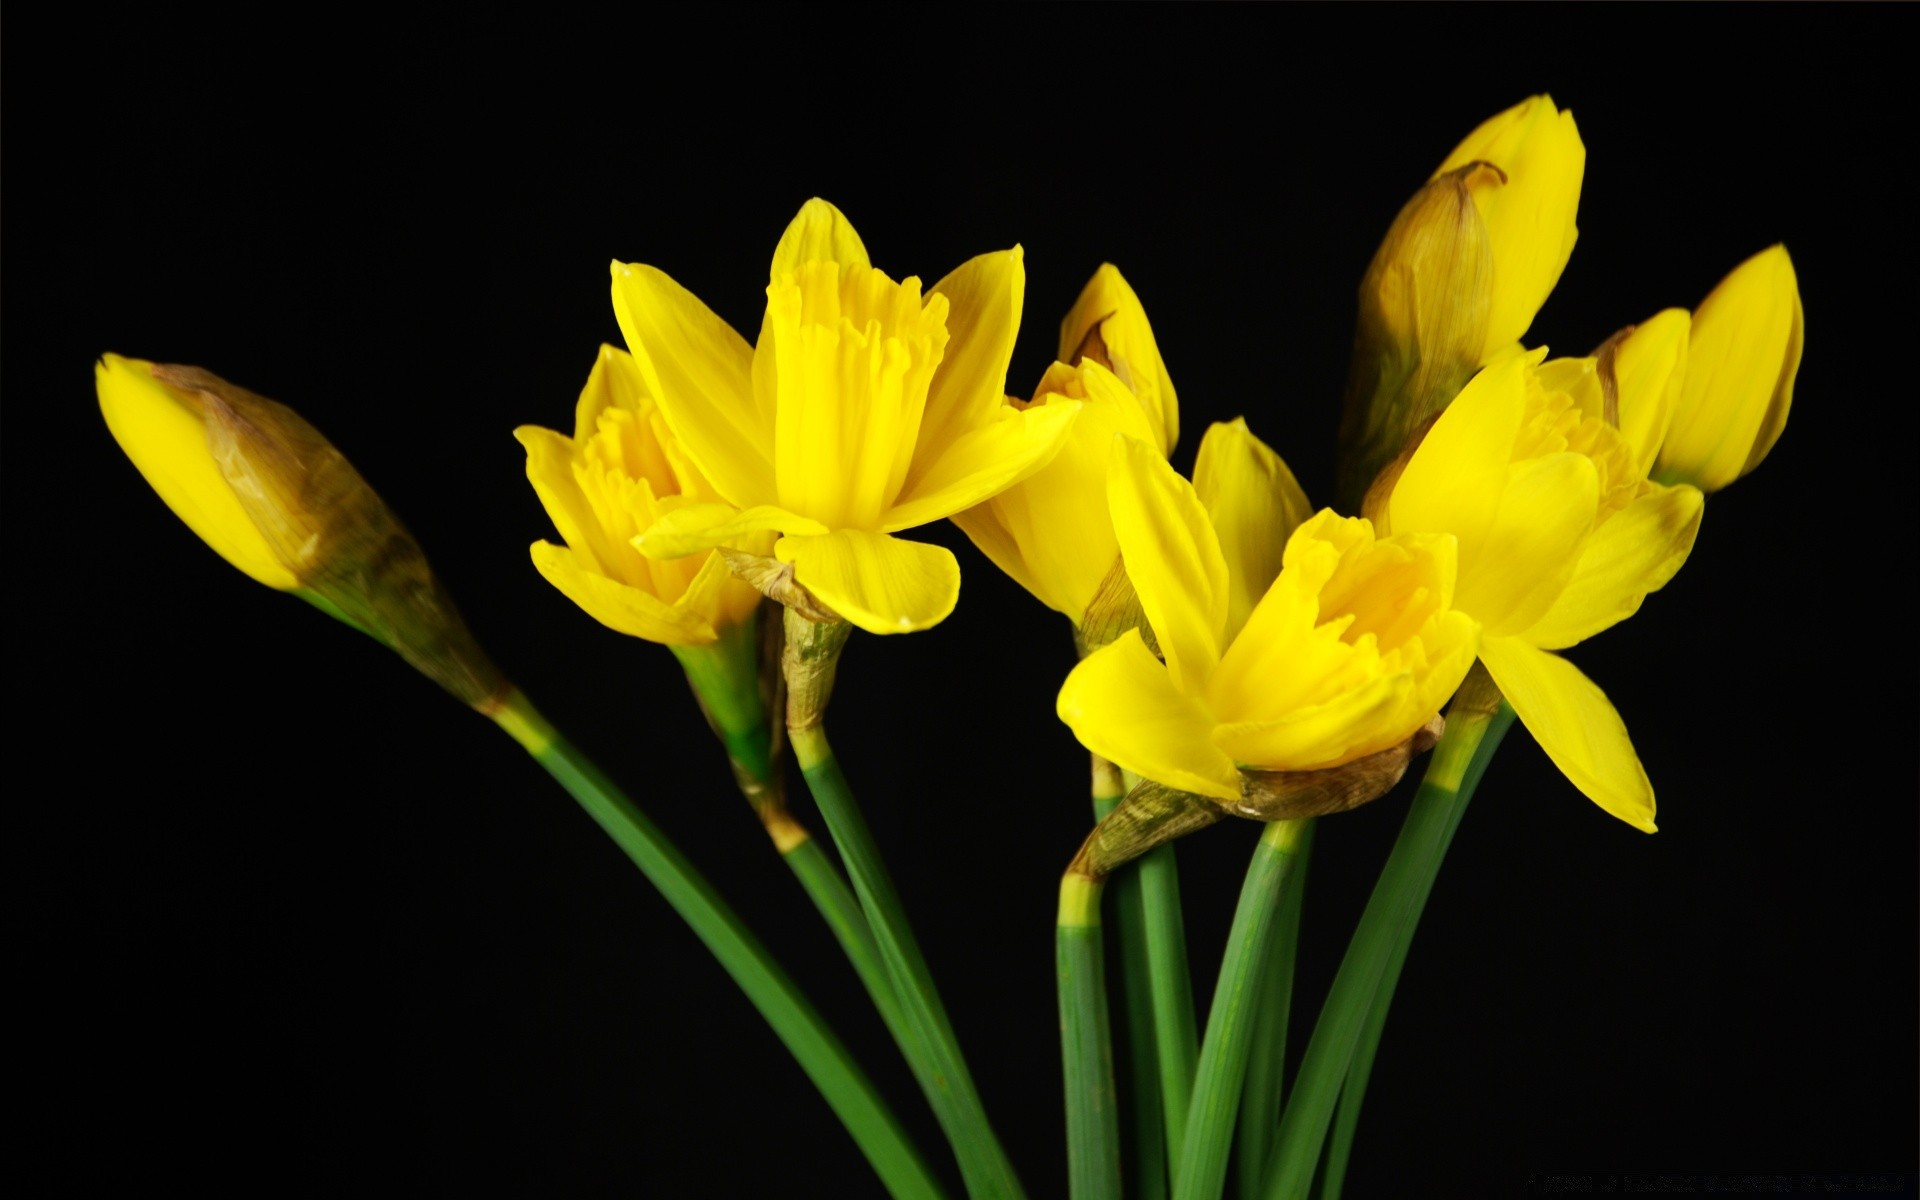 flowers nature flower flora easter daffodil floral narcissus leaf bright growth color petal blooming season summer husk close-up bulb